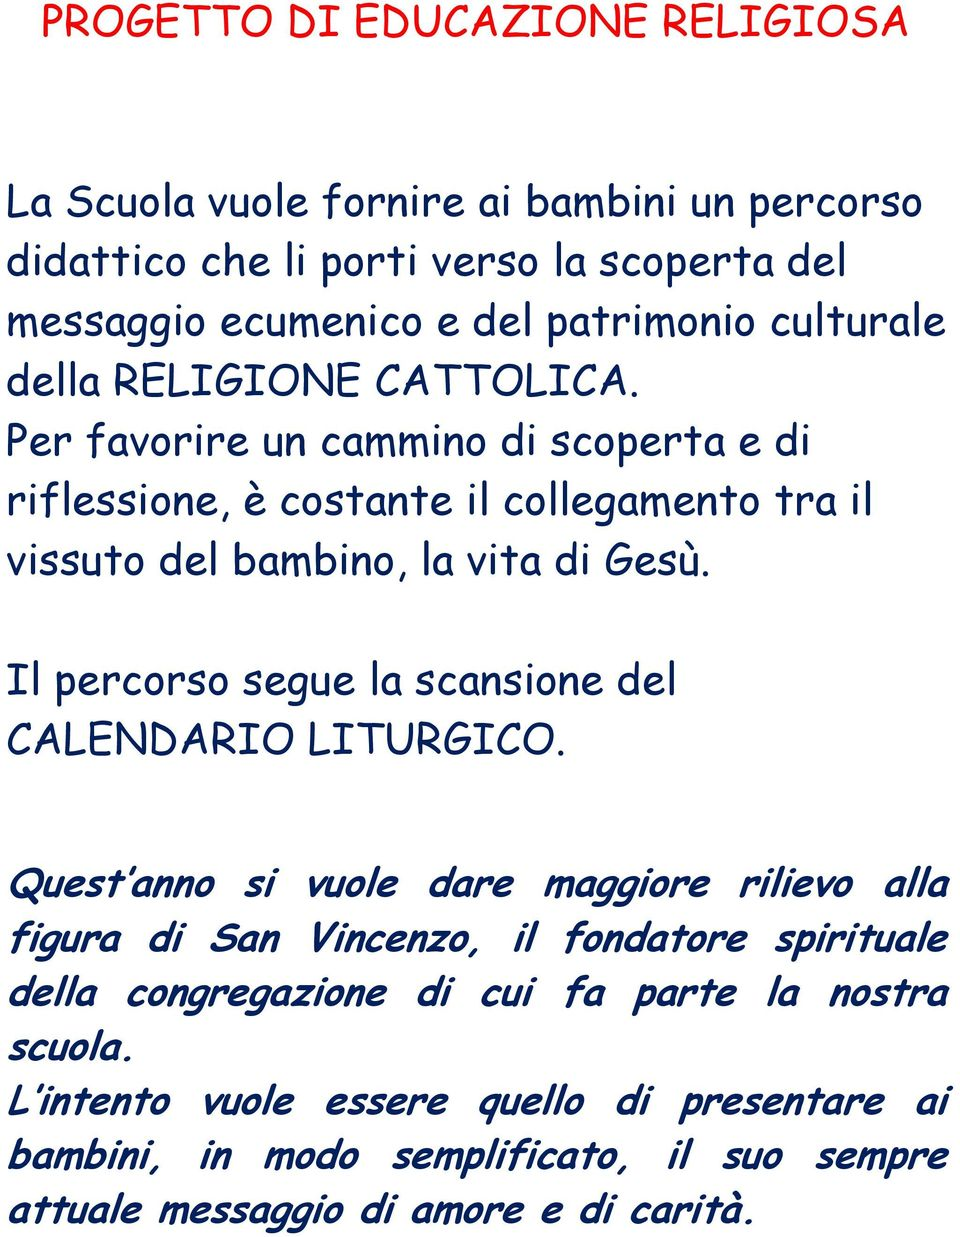 Il percorso segue la scansione del CALENDARIO LITURGICO.